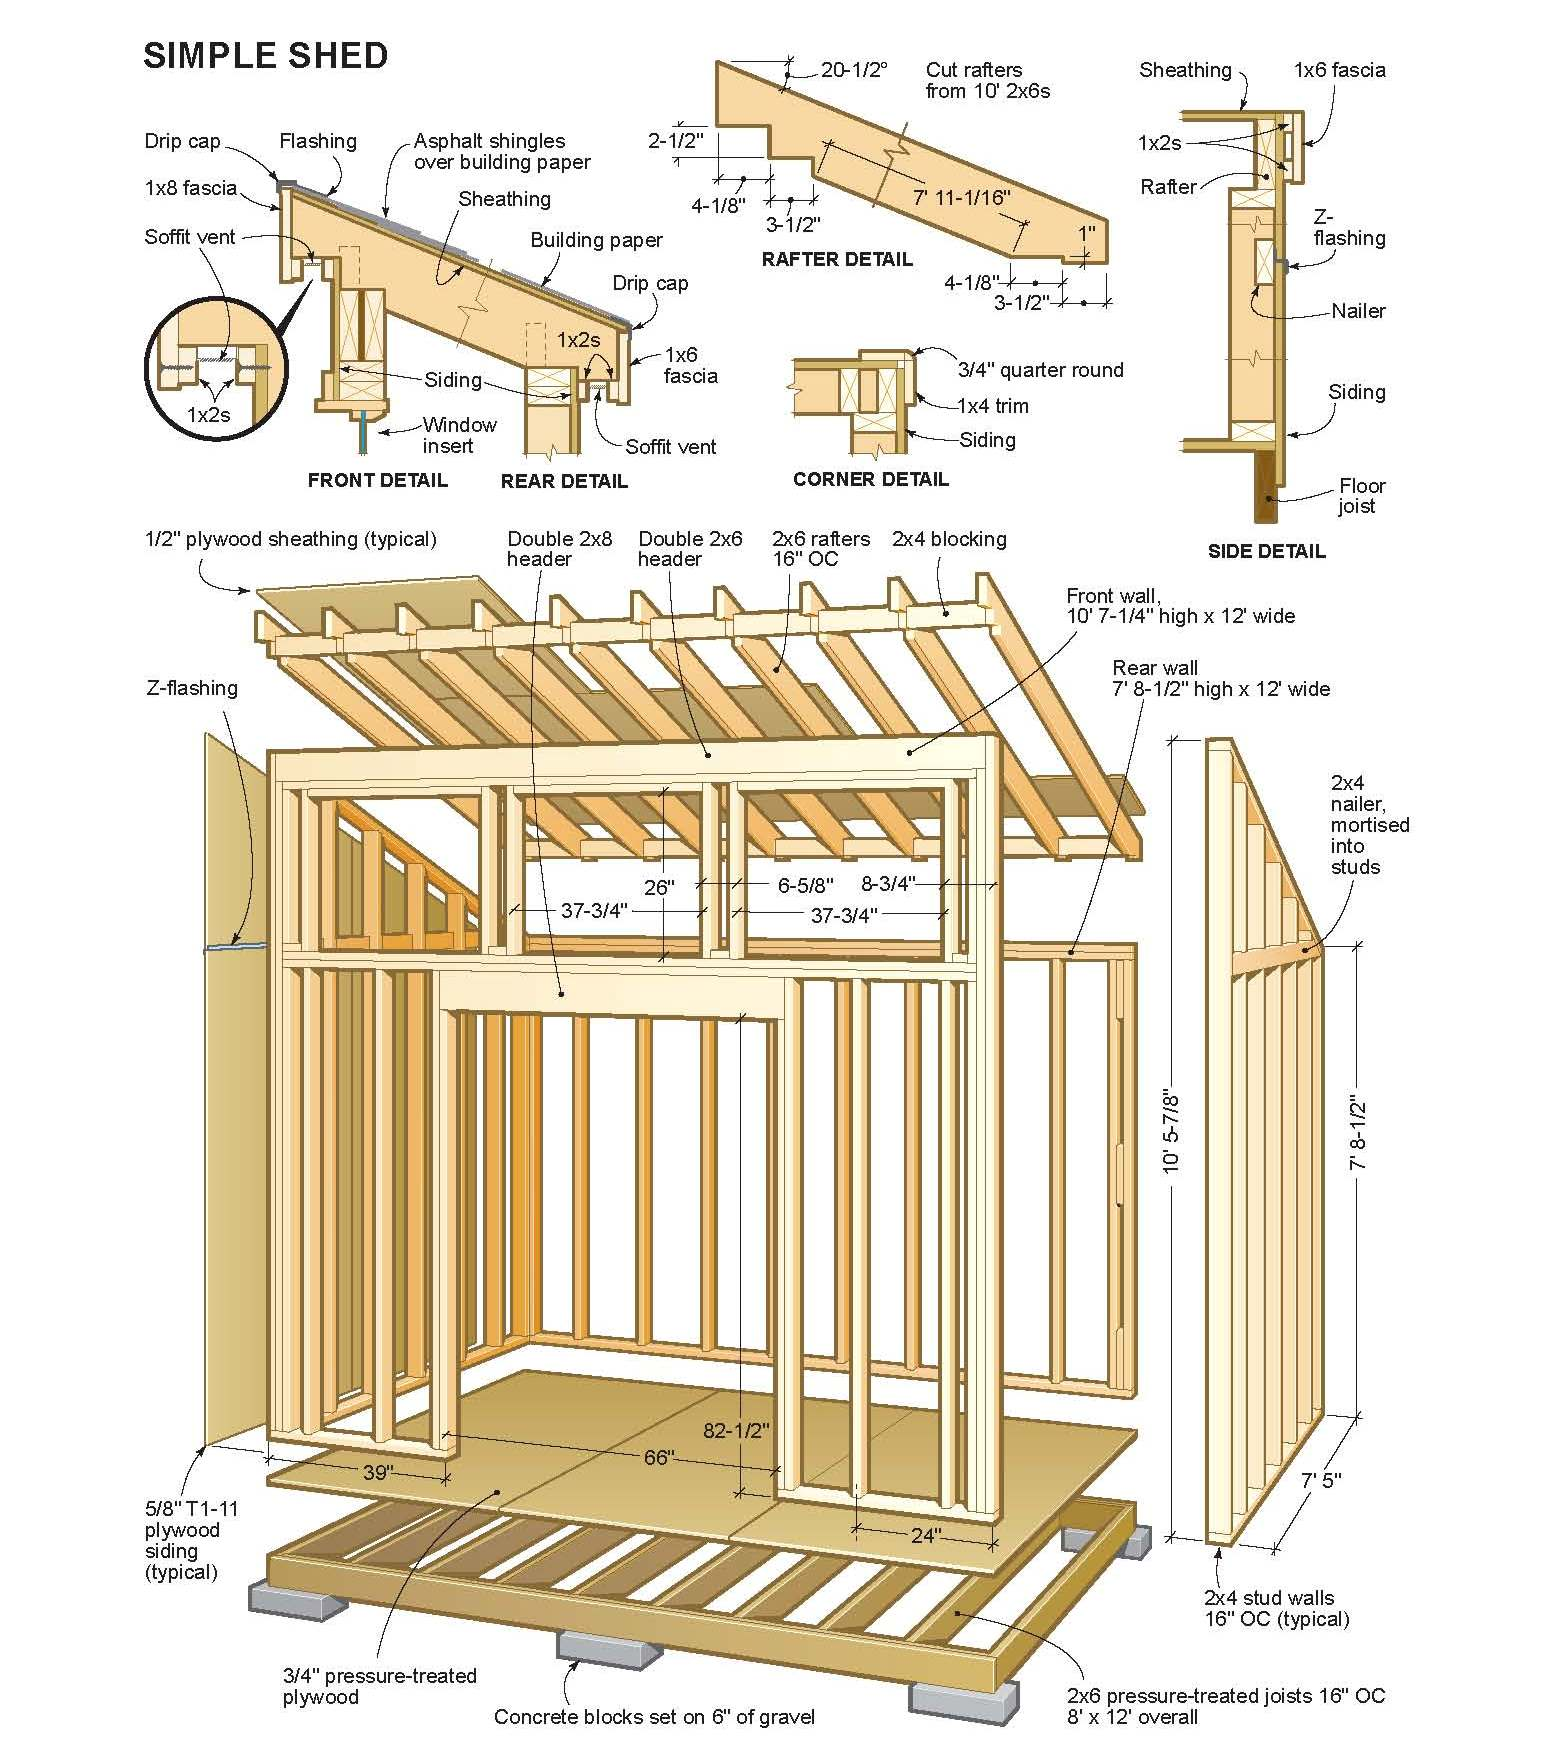 Shed blueprints shed plans can have a variety of roof styles for Clerestory shed plans